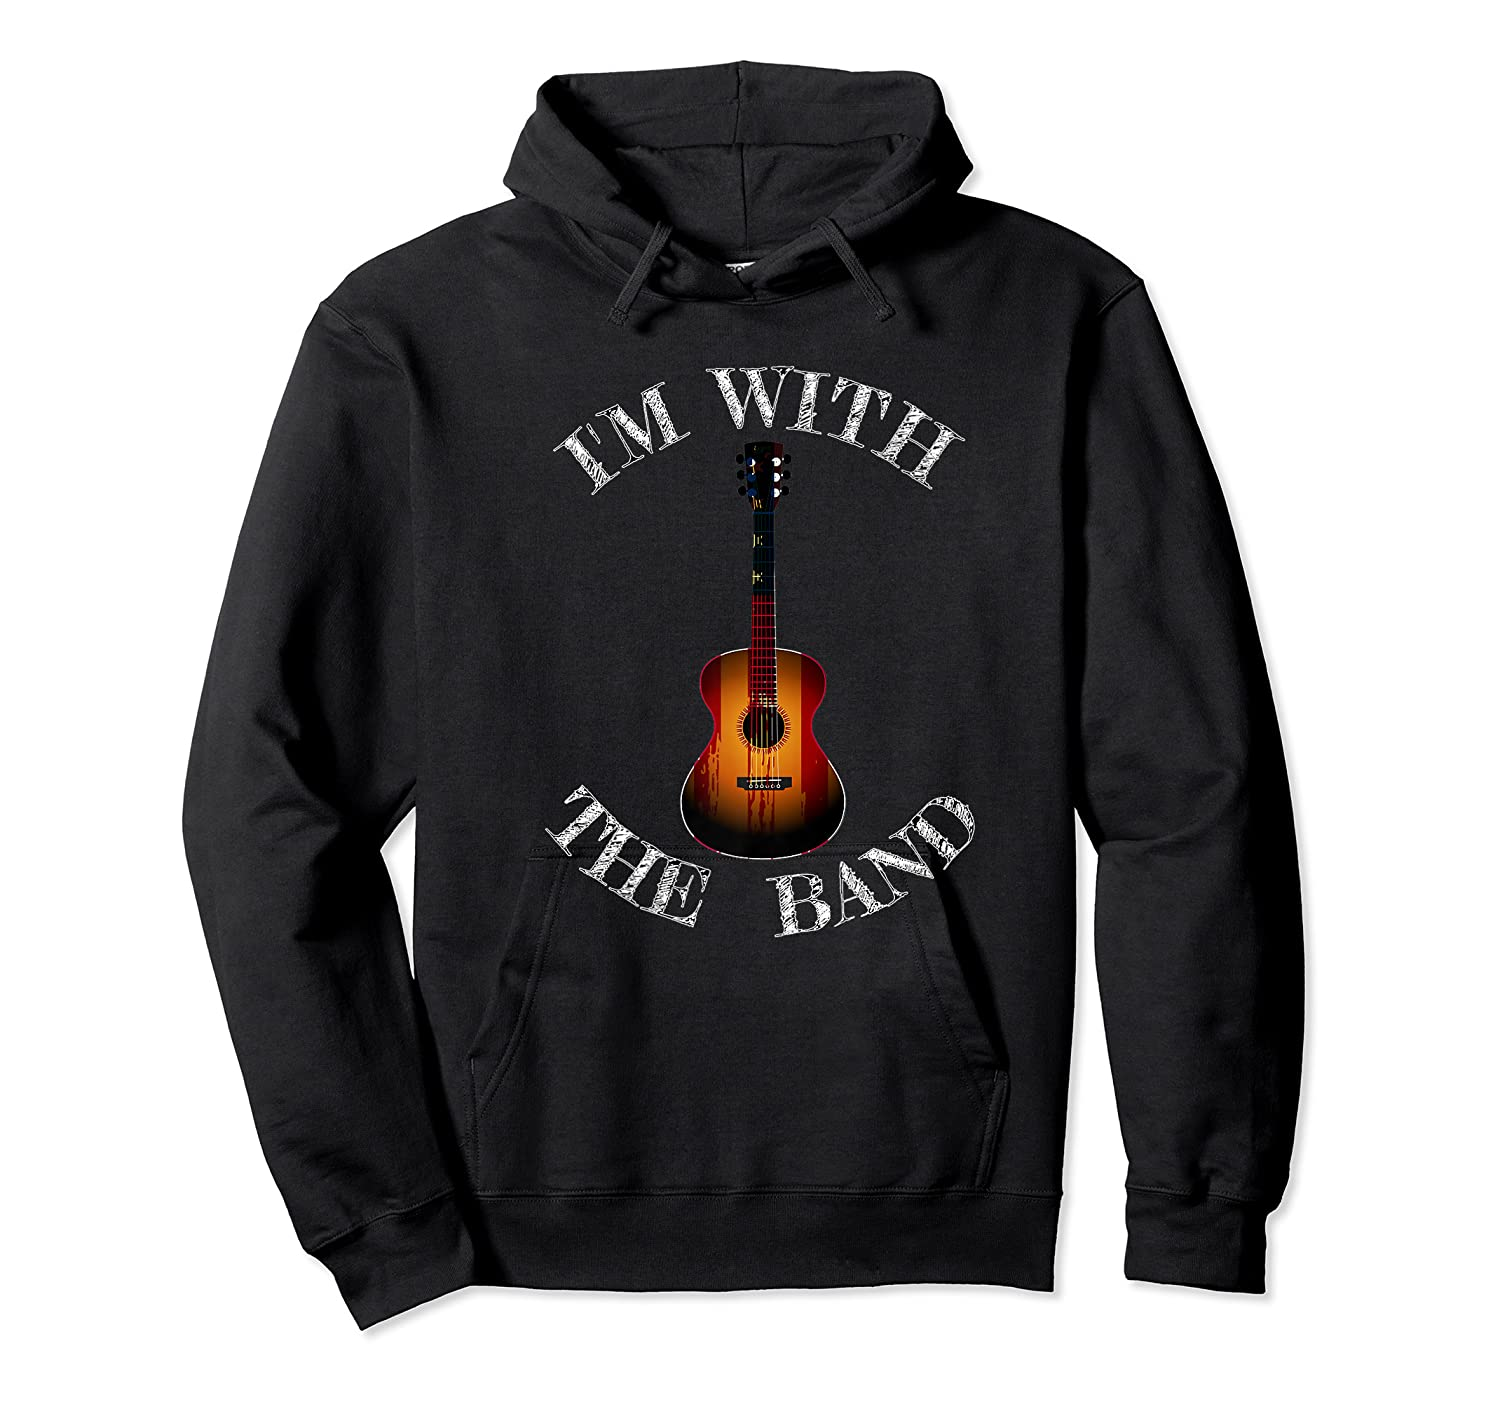 M With The Band Shirts Unisex Pullover Hoodie